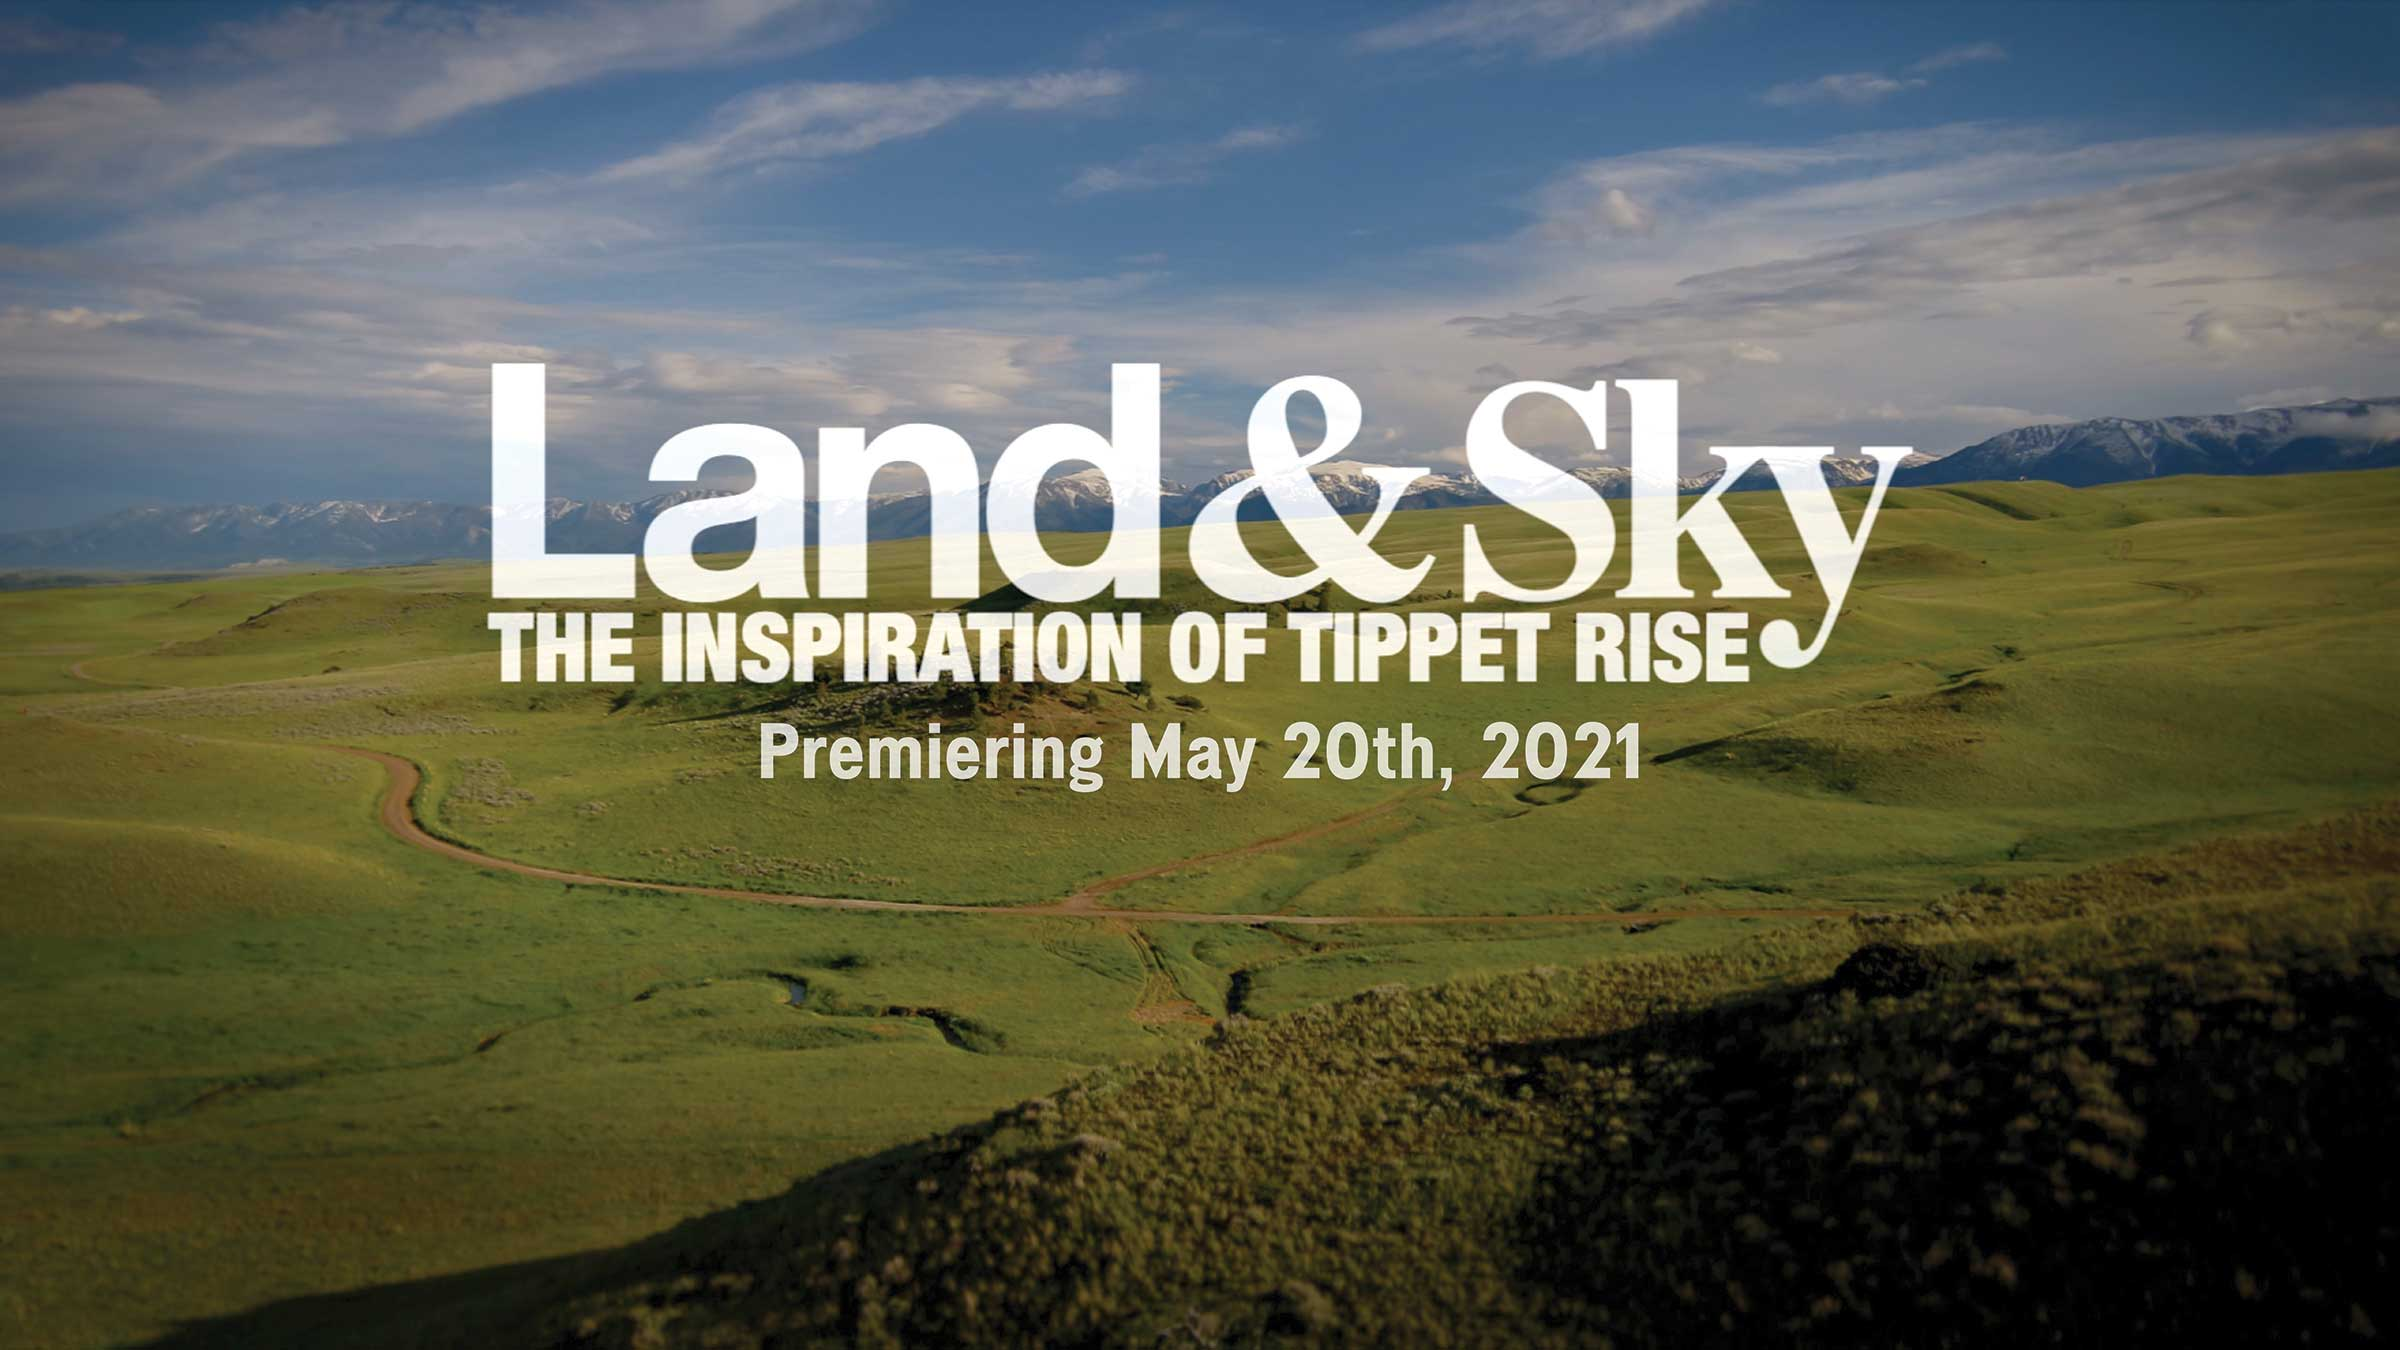 Land & Sky - The Inspiration of Tippet Rise: Premiering May 20th, 2021